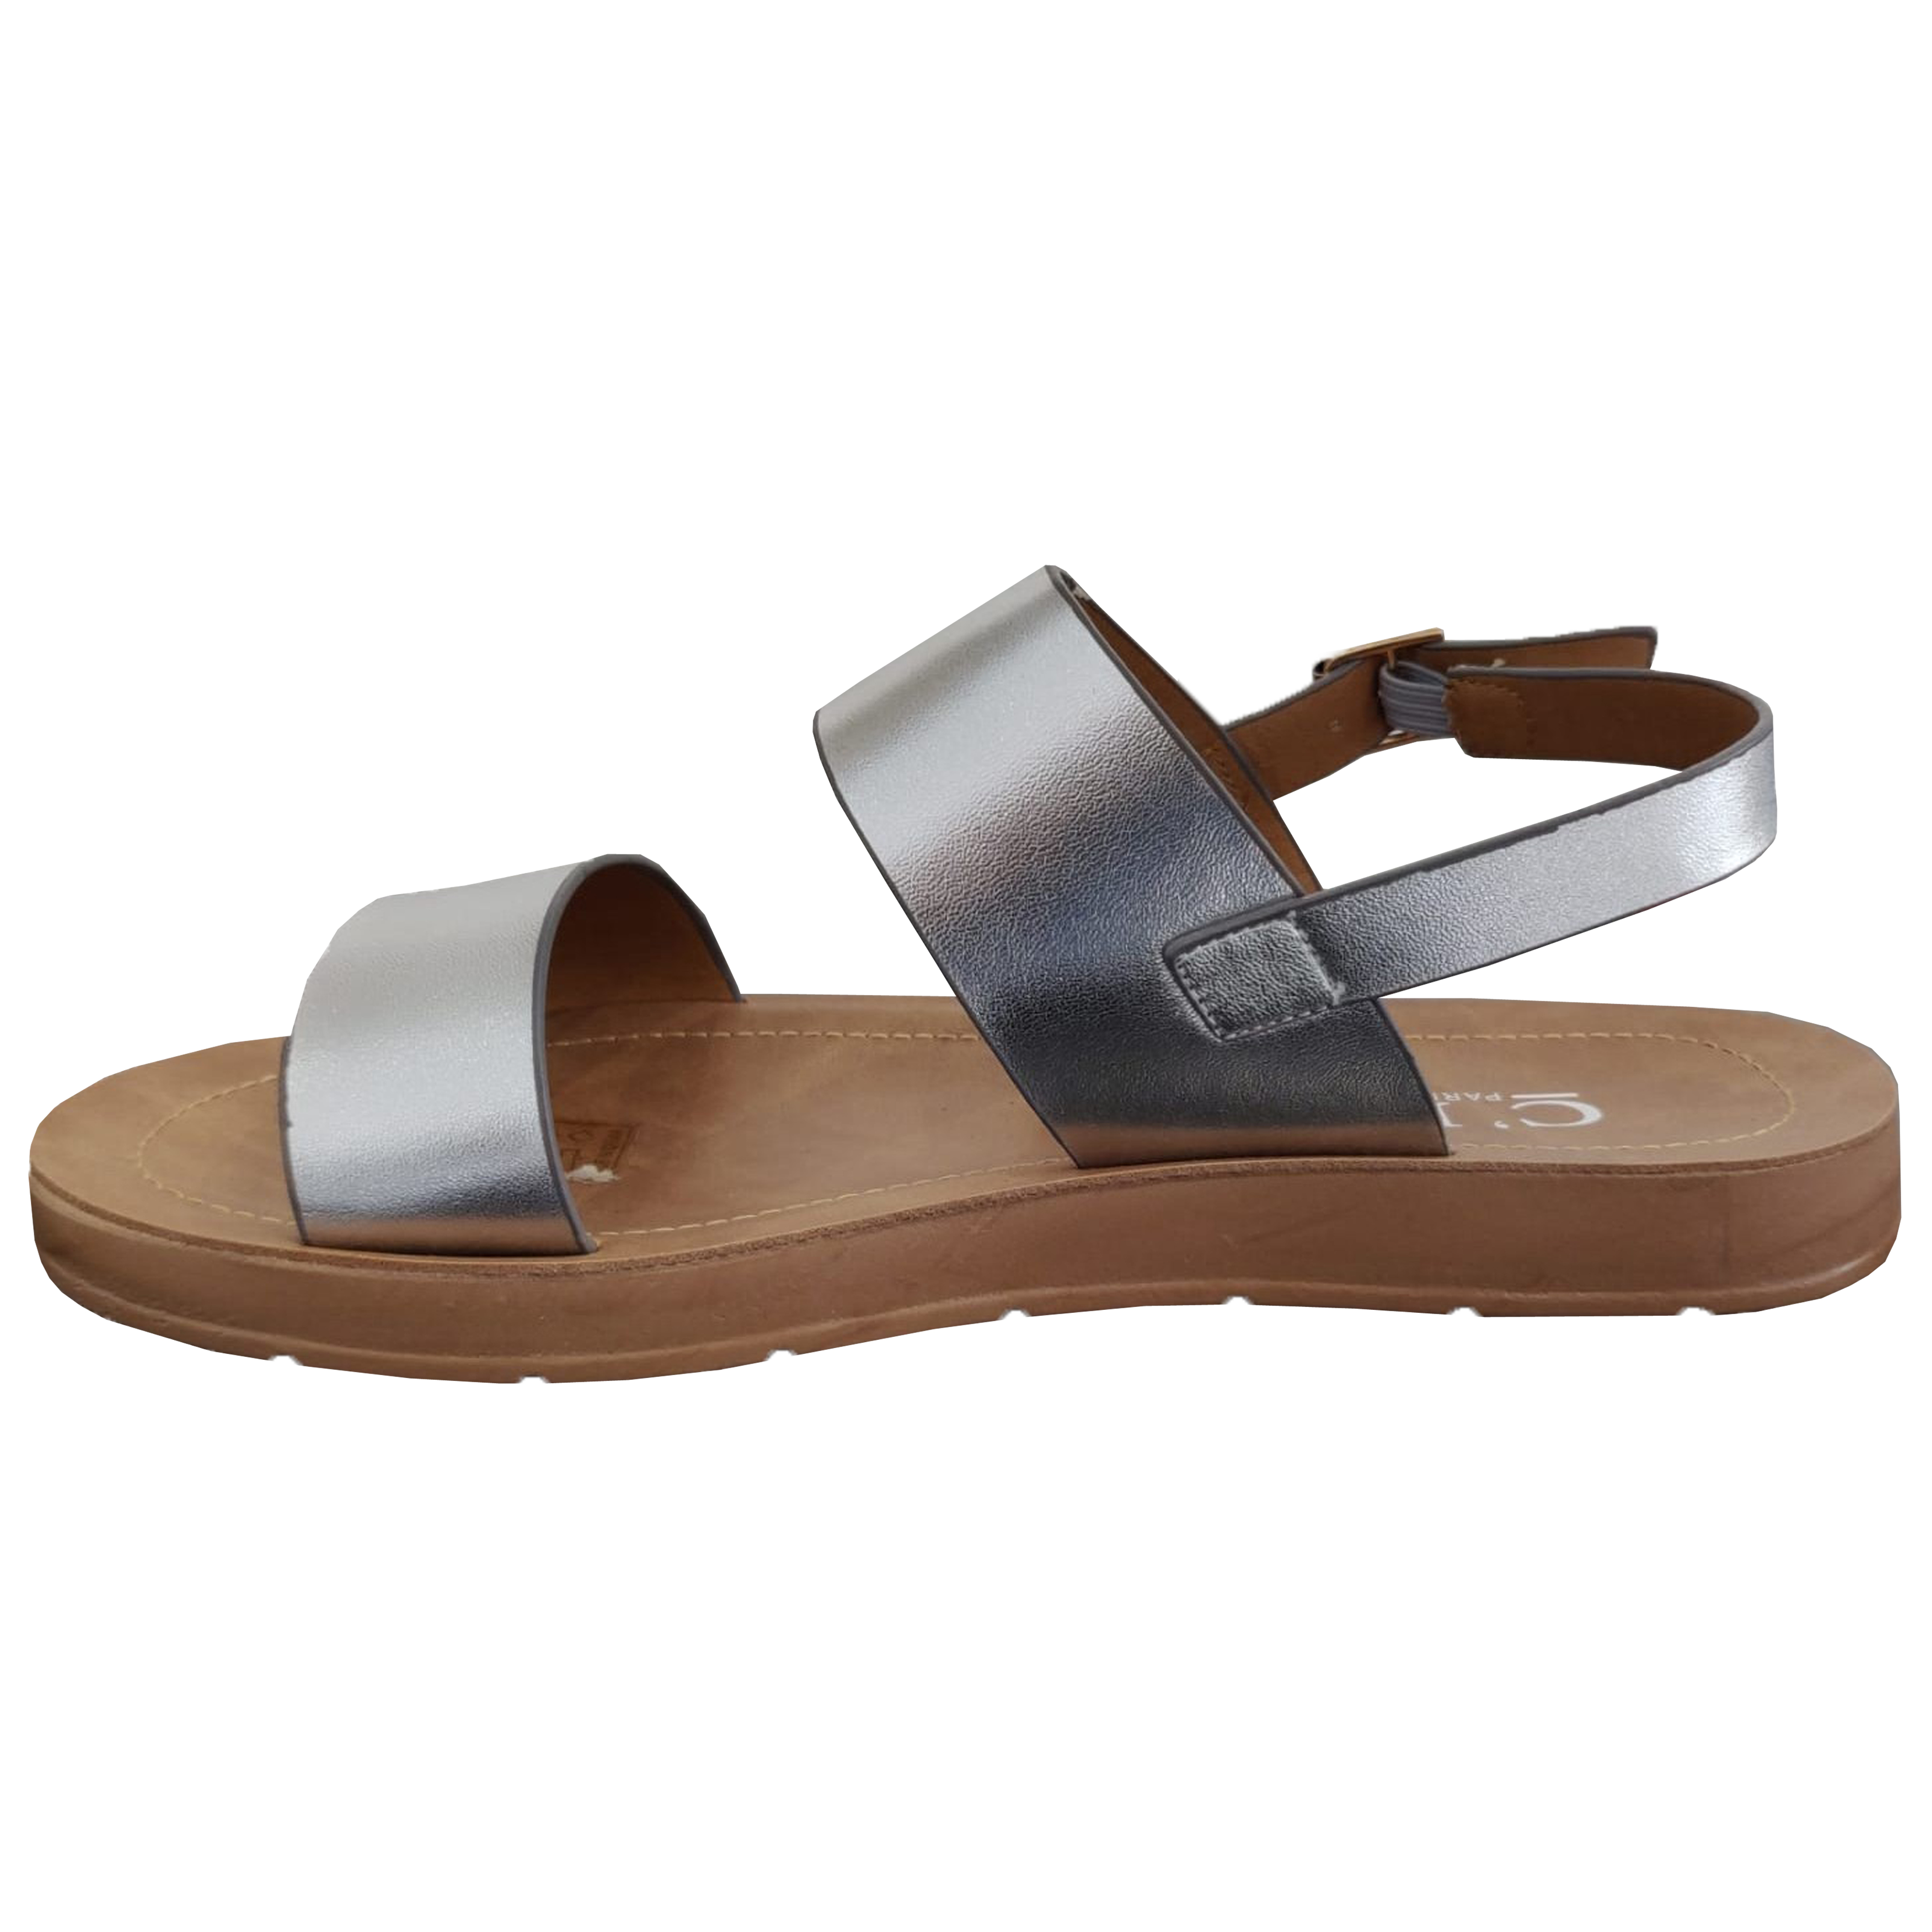 Ladies Flat Sandals Womens Open Toe Buckle Double Strap Casual Fashion Summer